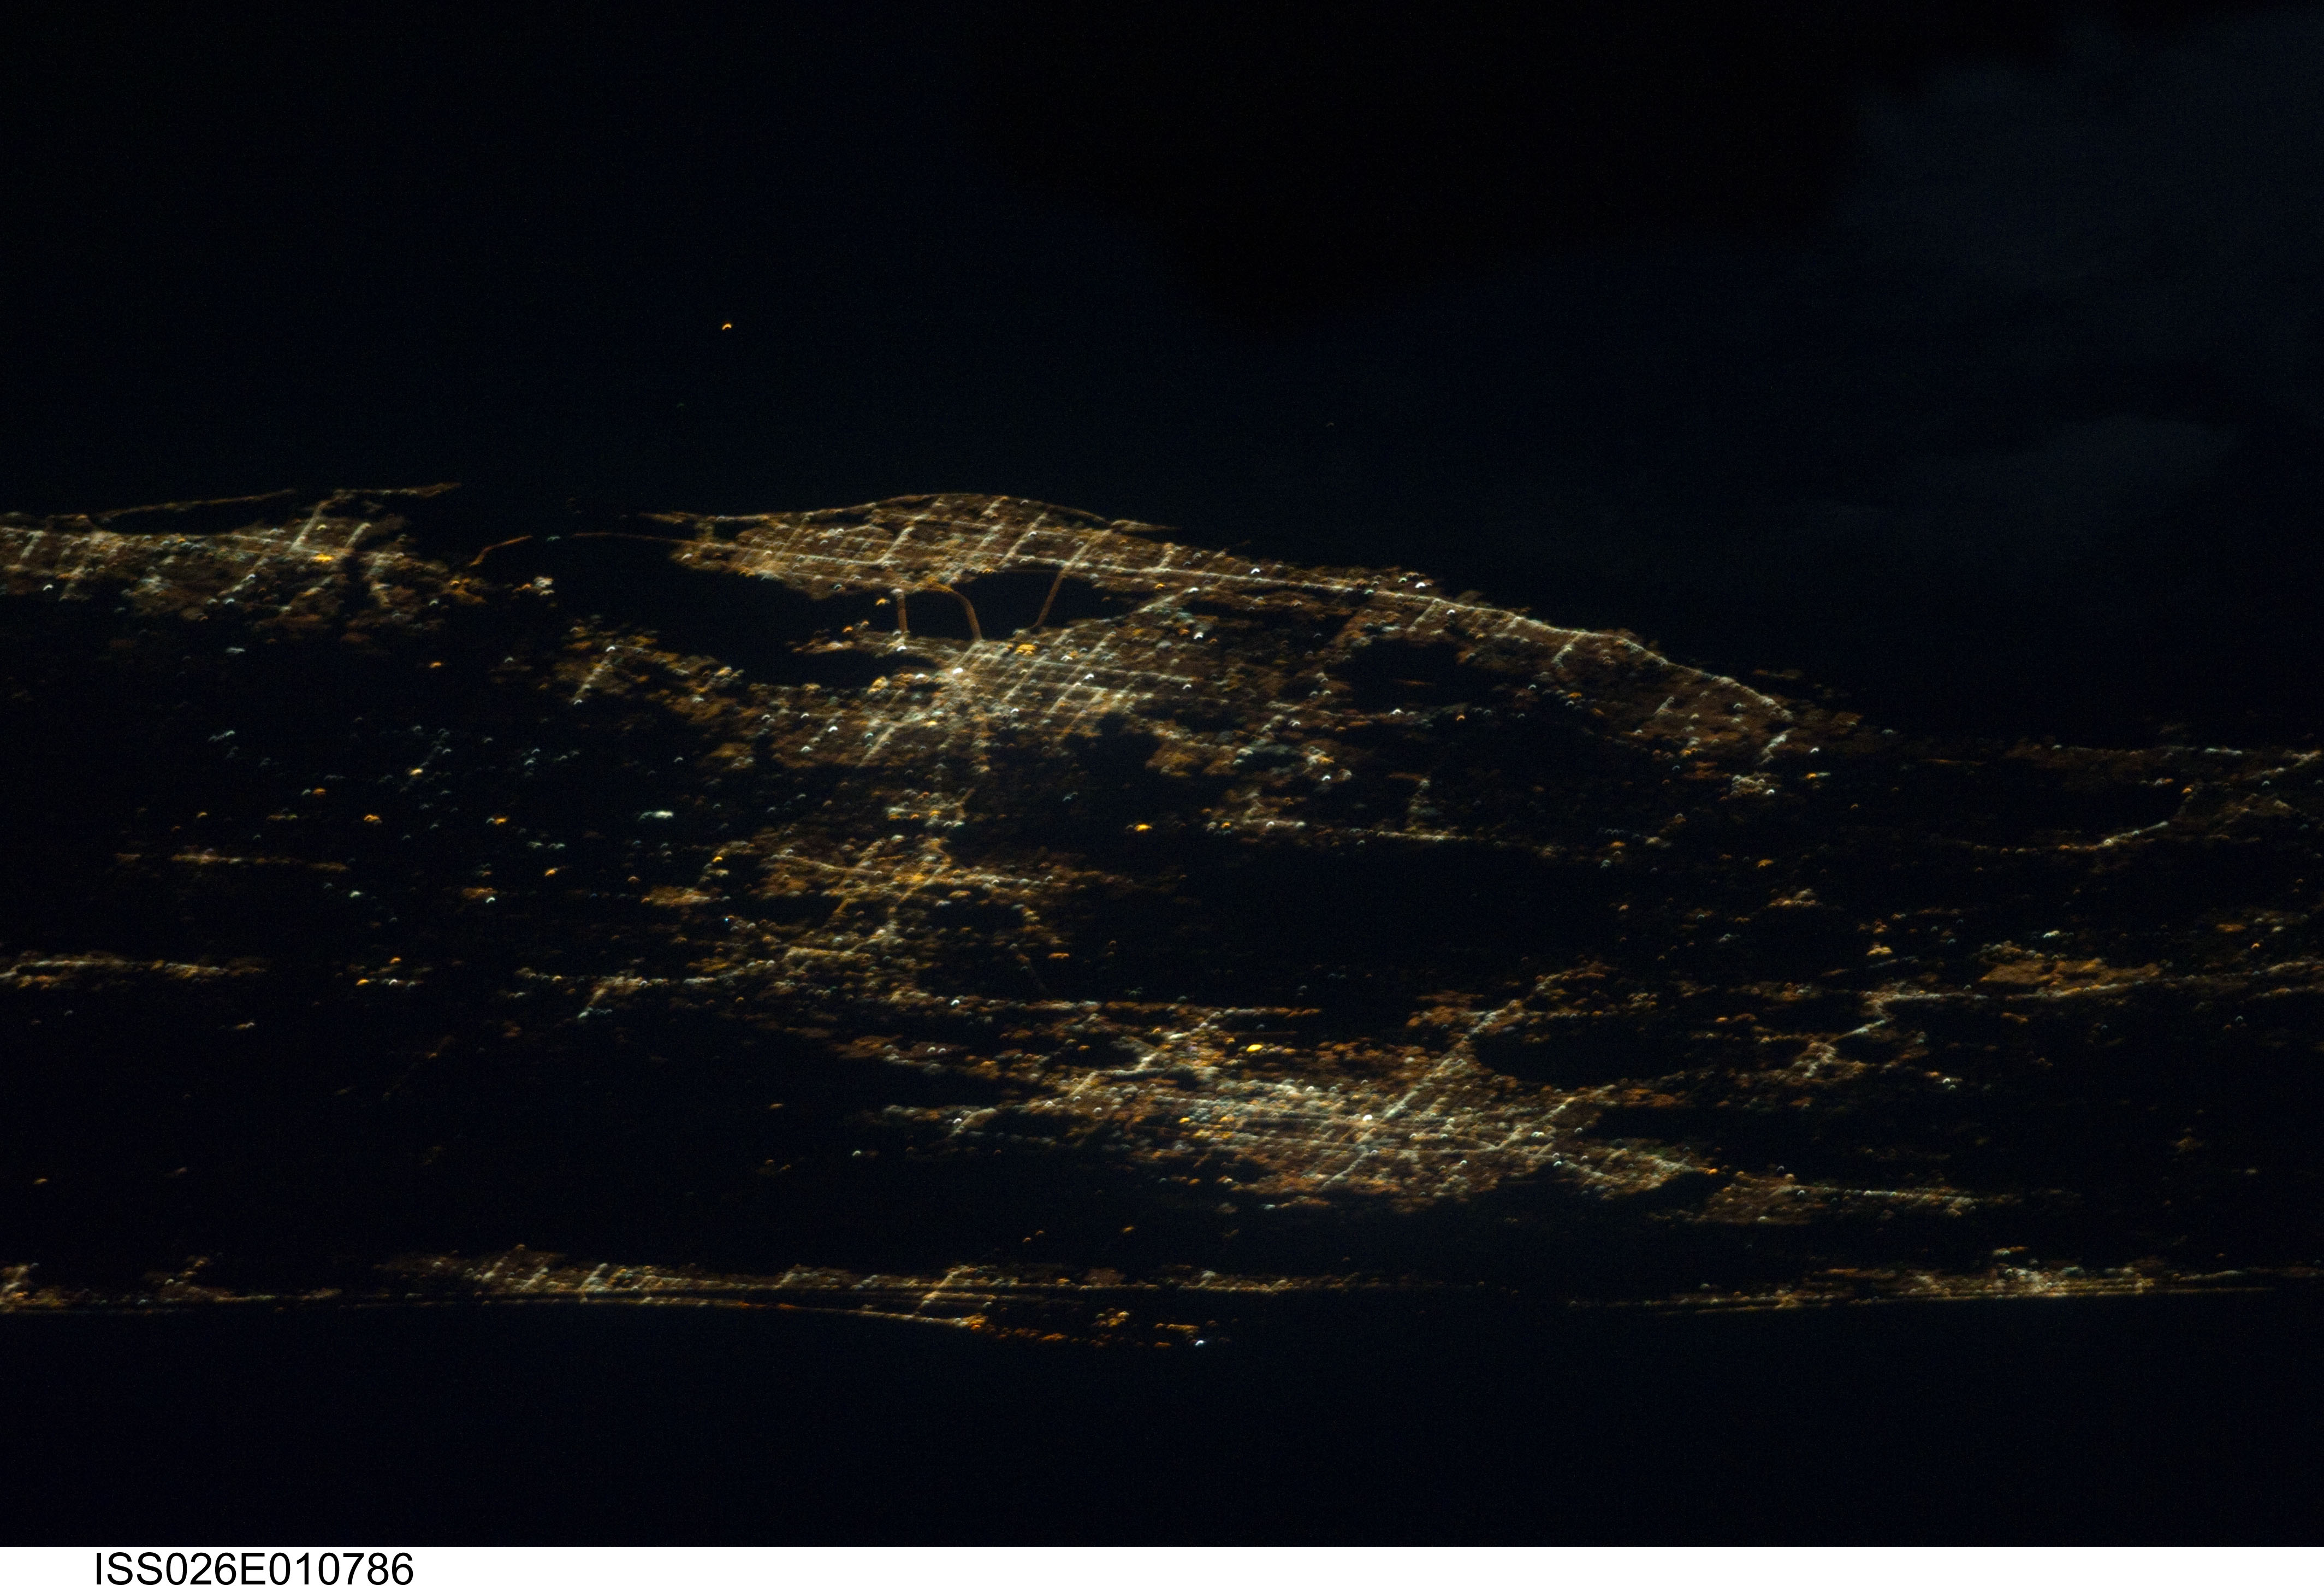 Central Florida at night, as seen from the ISS  : orlando